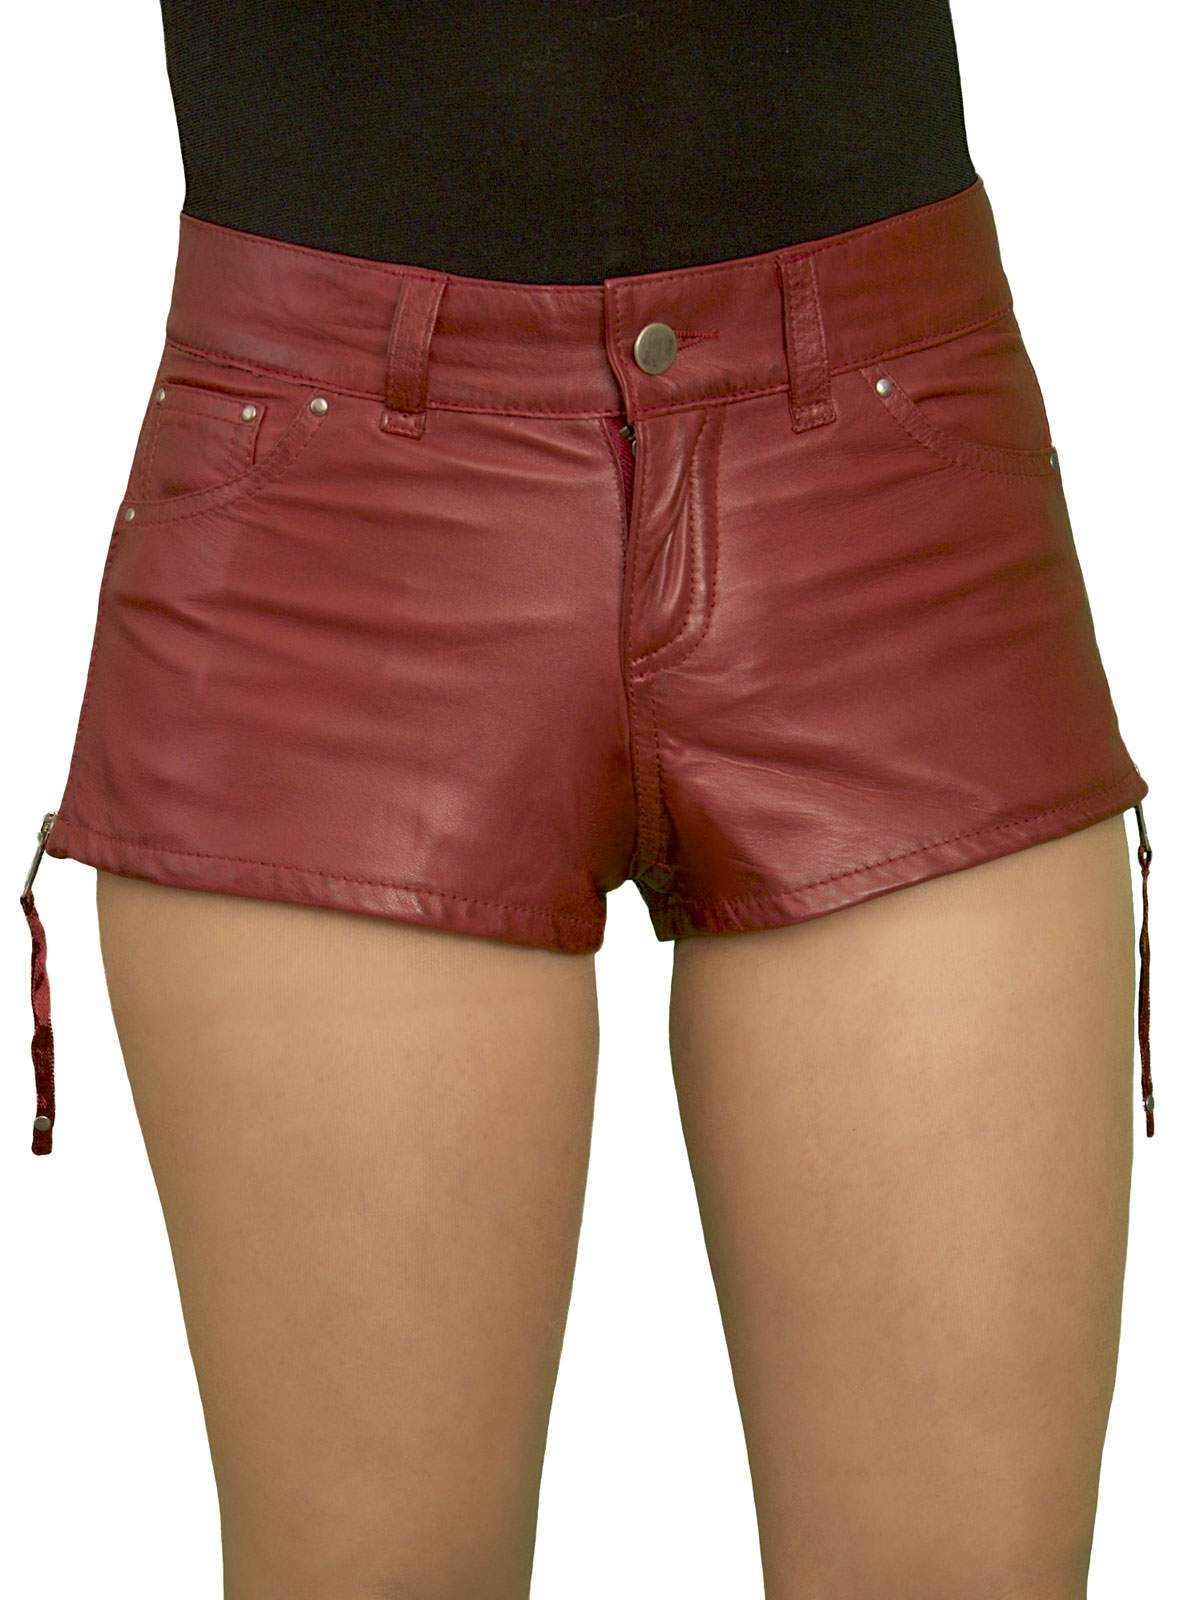 womens leather boxer shorts red / womens boxer shorts